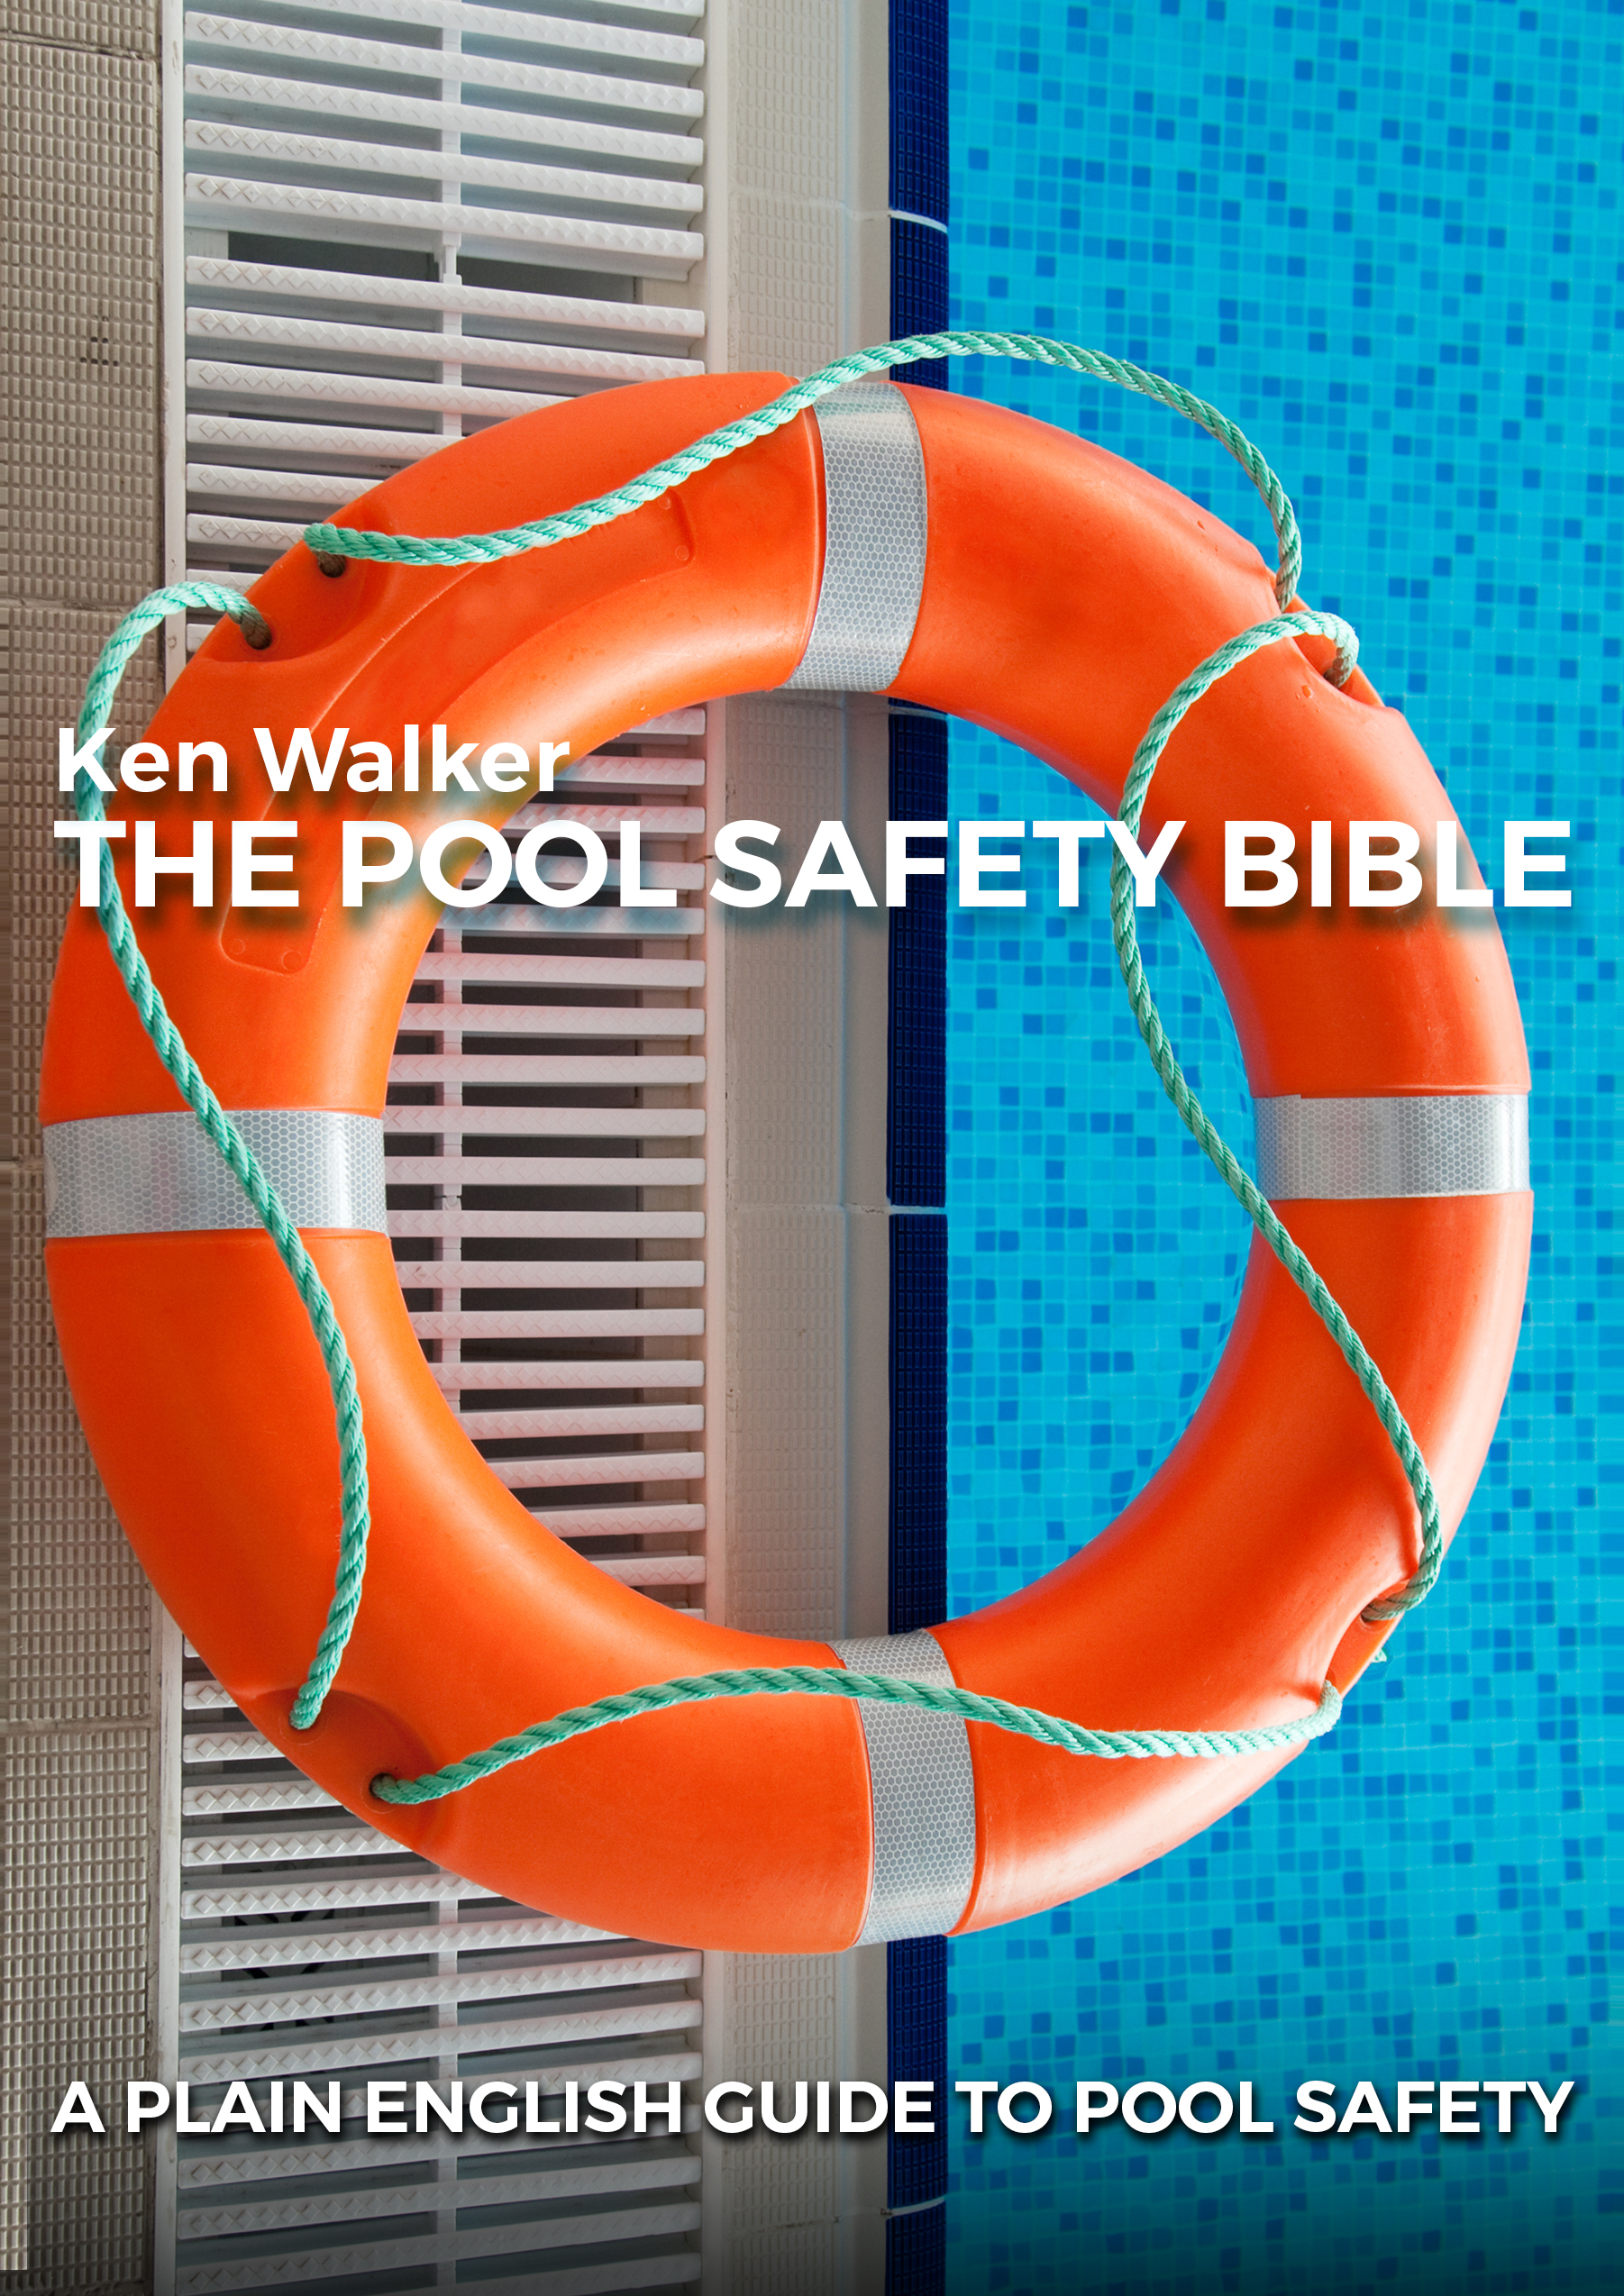 The-Pool-Safety-Bible-cover.jpg - 3.08 MB